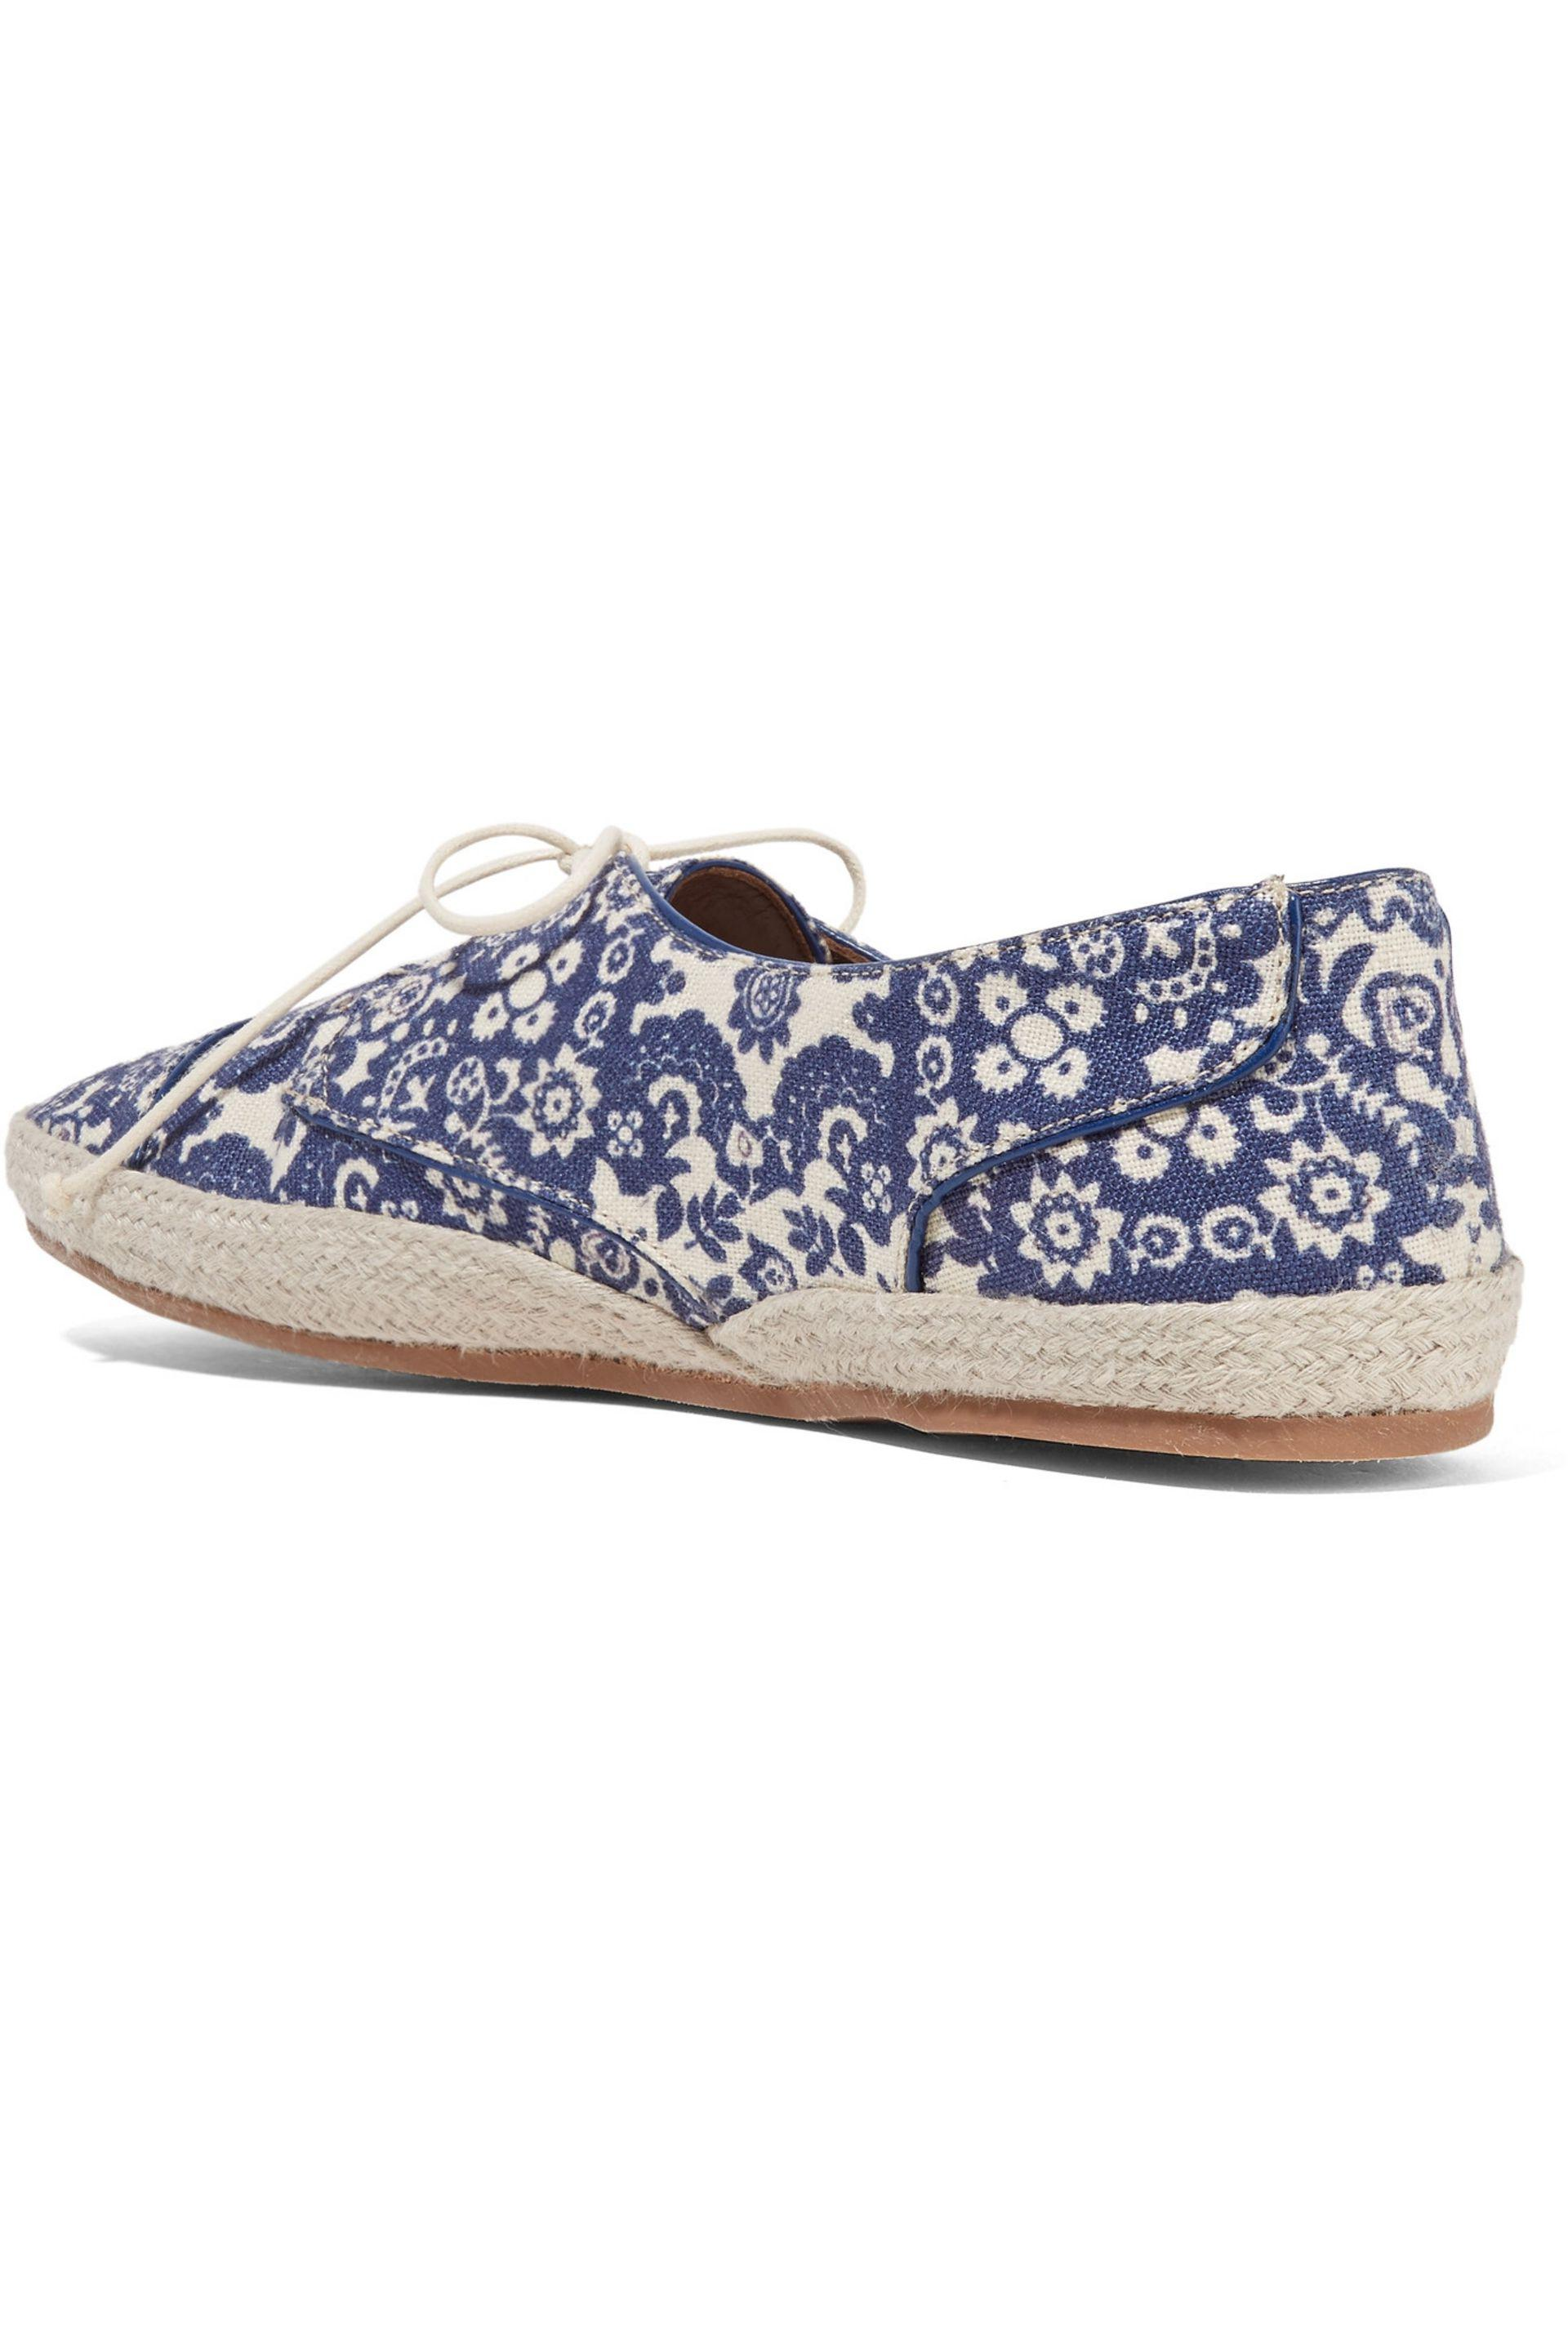 Tabitha Simmons Canvas Espadrille Sneakers discount fashionable aKn5oxEJDs